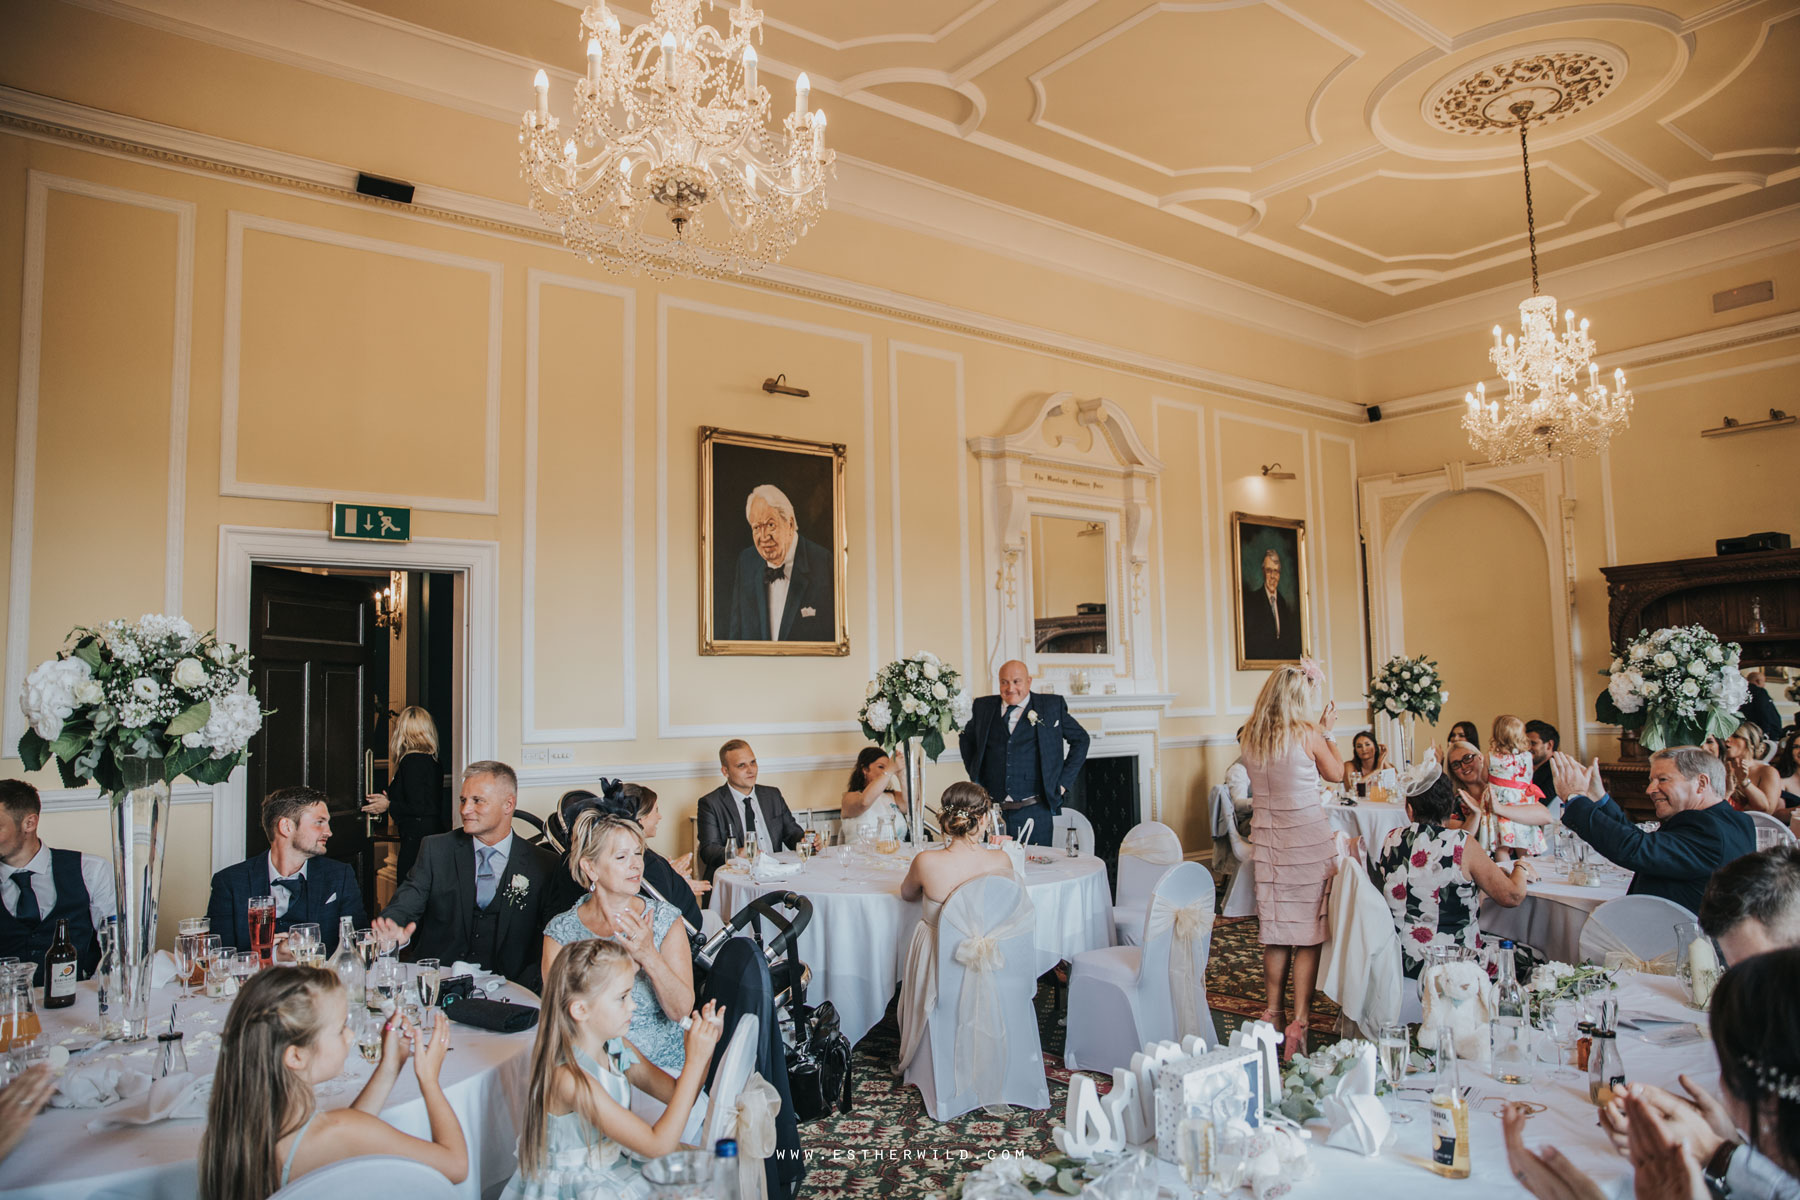 Lynford_Hall_Wedding_Thetford_Mundford_Esther_Wild_Photographer_IMG_2494.jpg